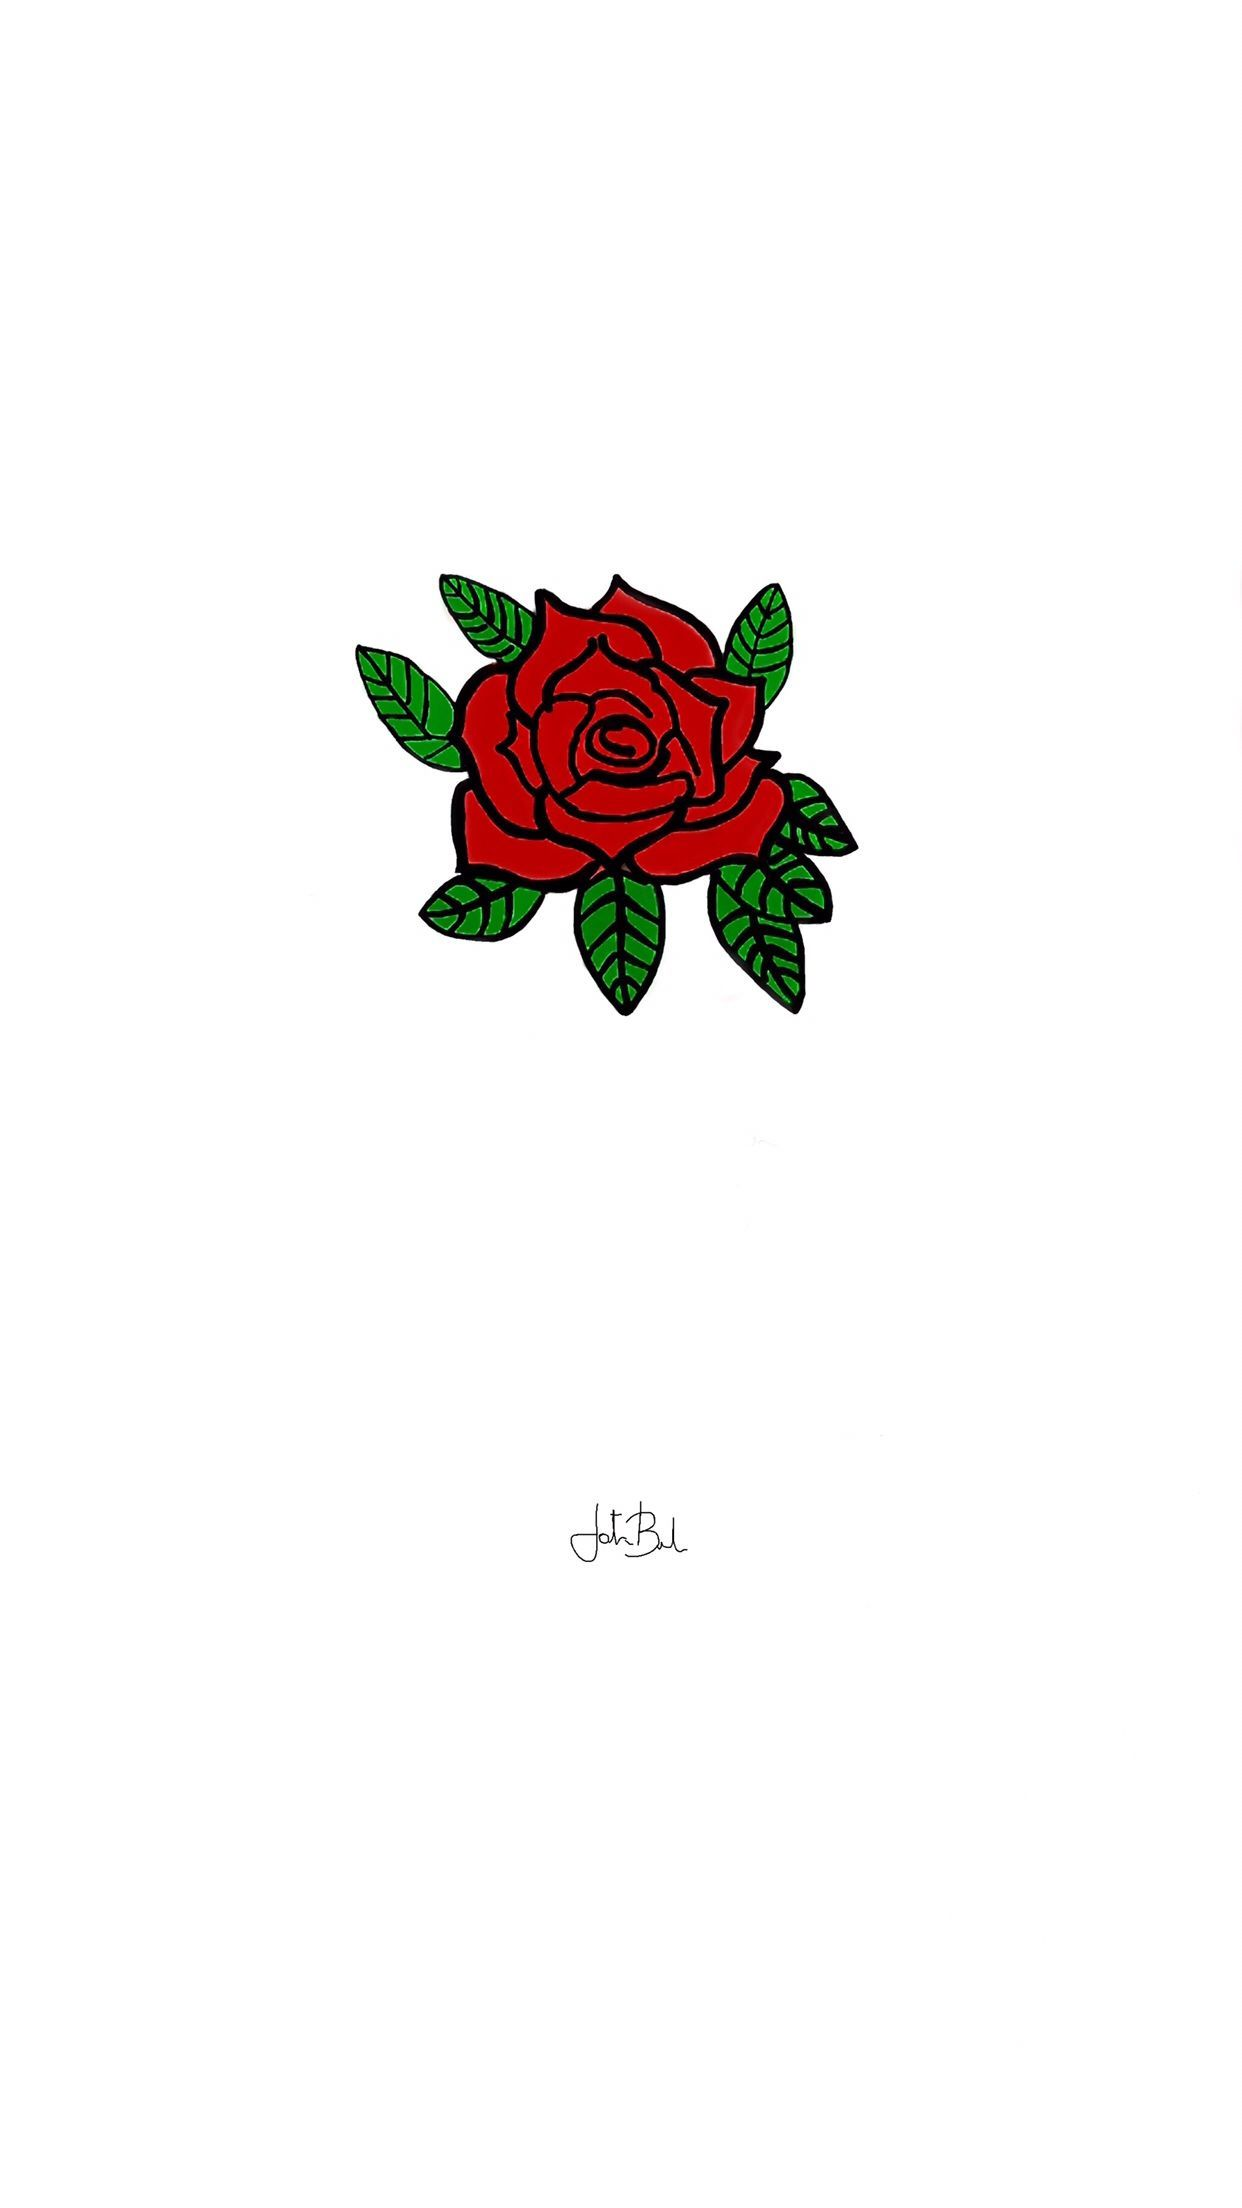 Hypebeast Rose Wallpapers   Top Hypebeast Rose Backgrounds 1242x2208